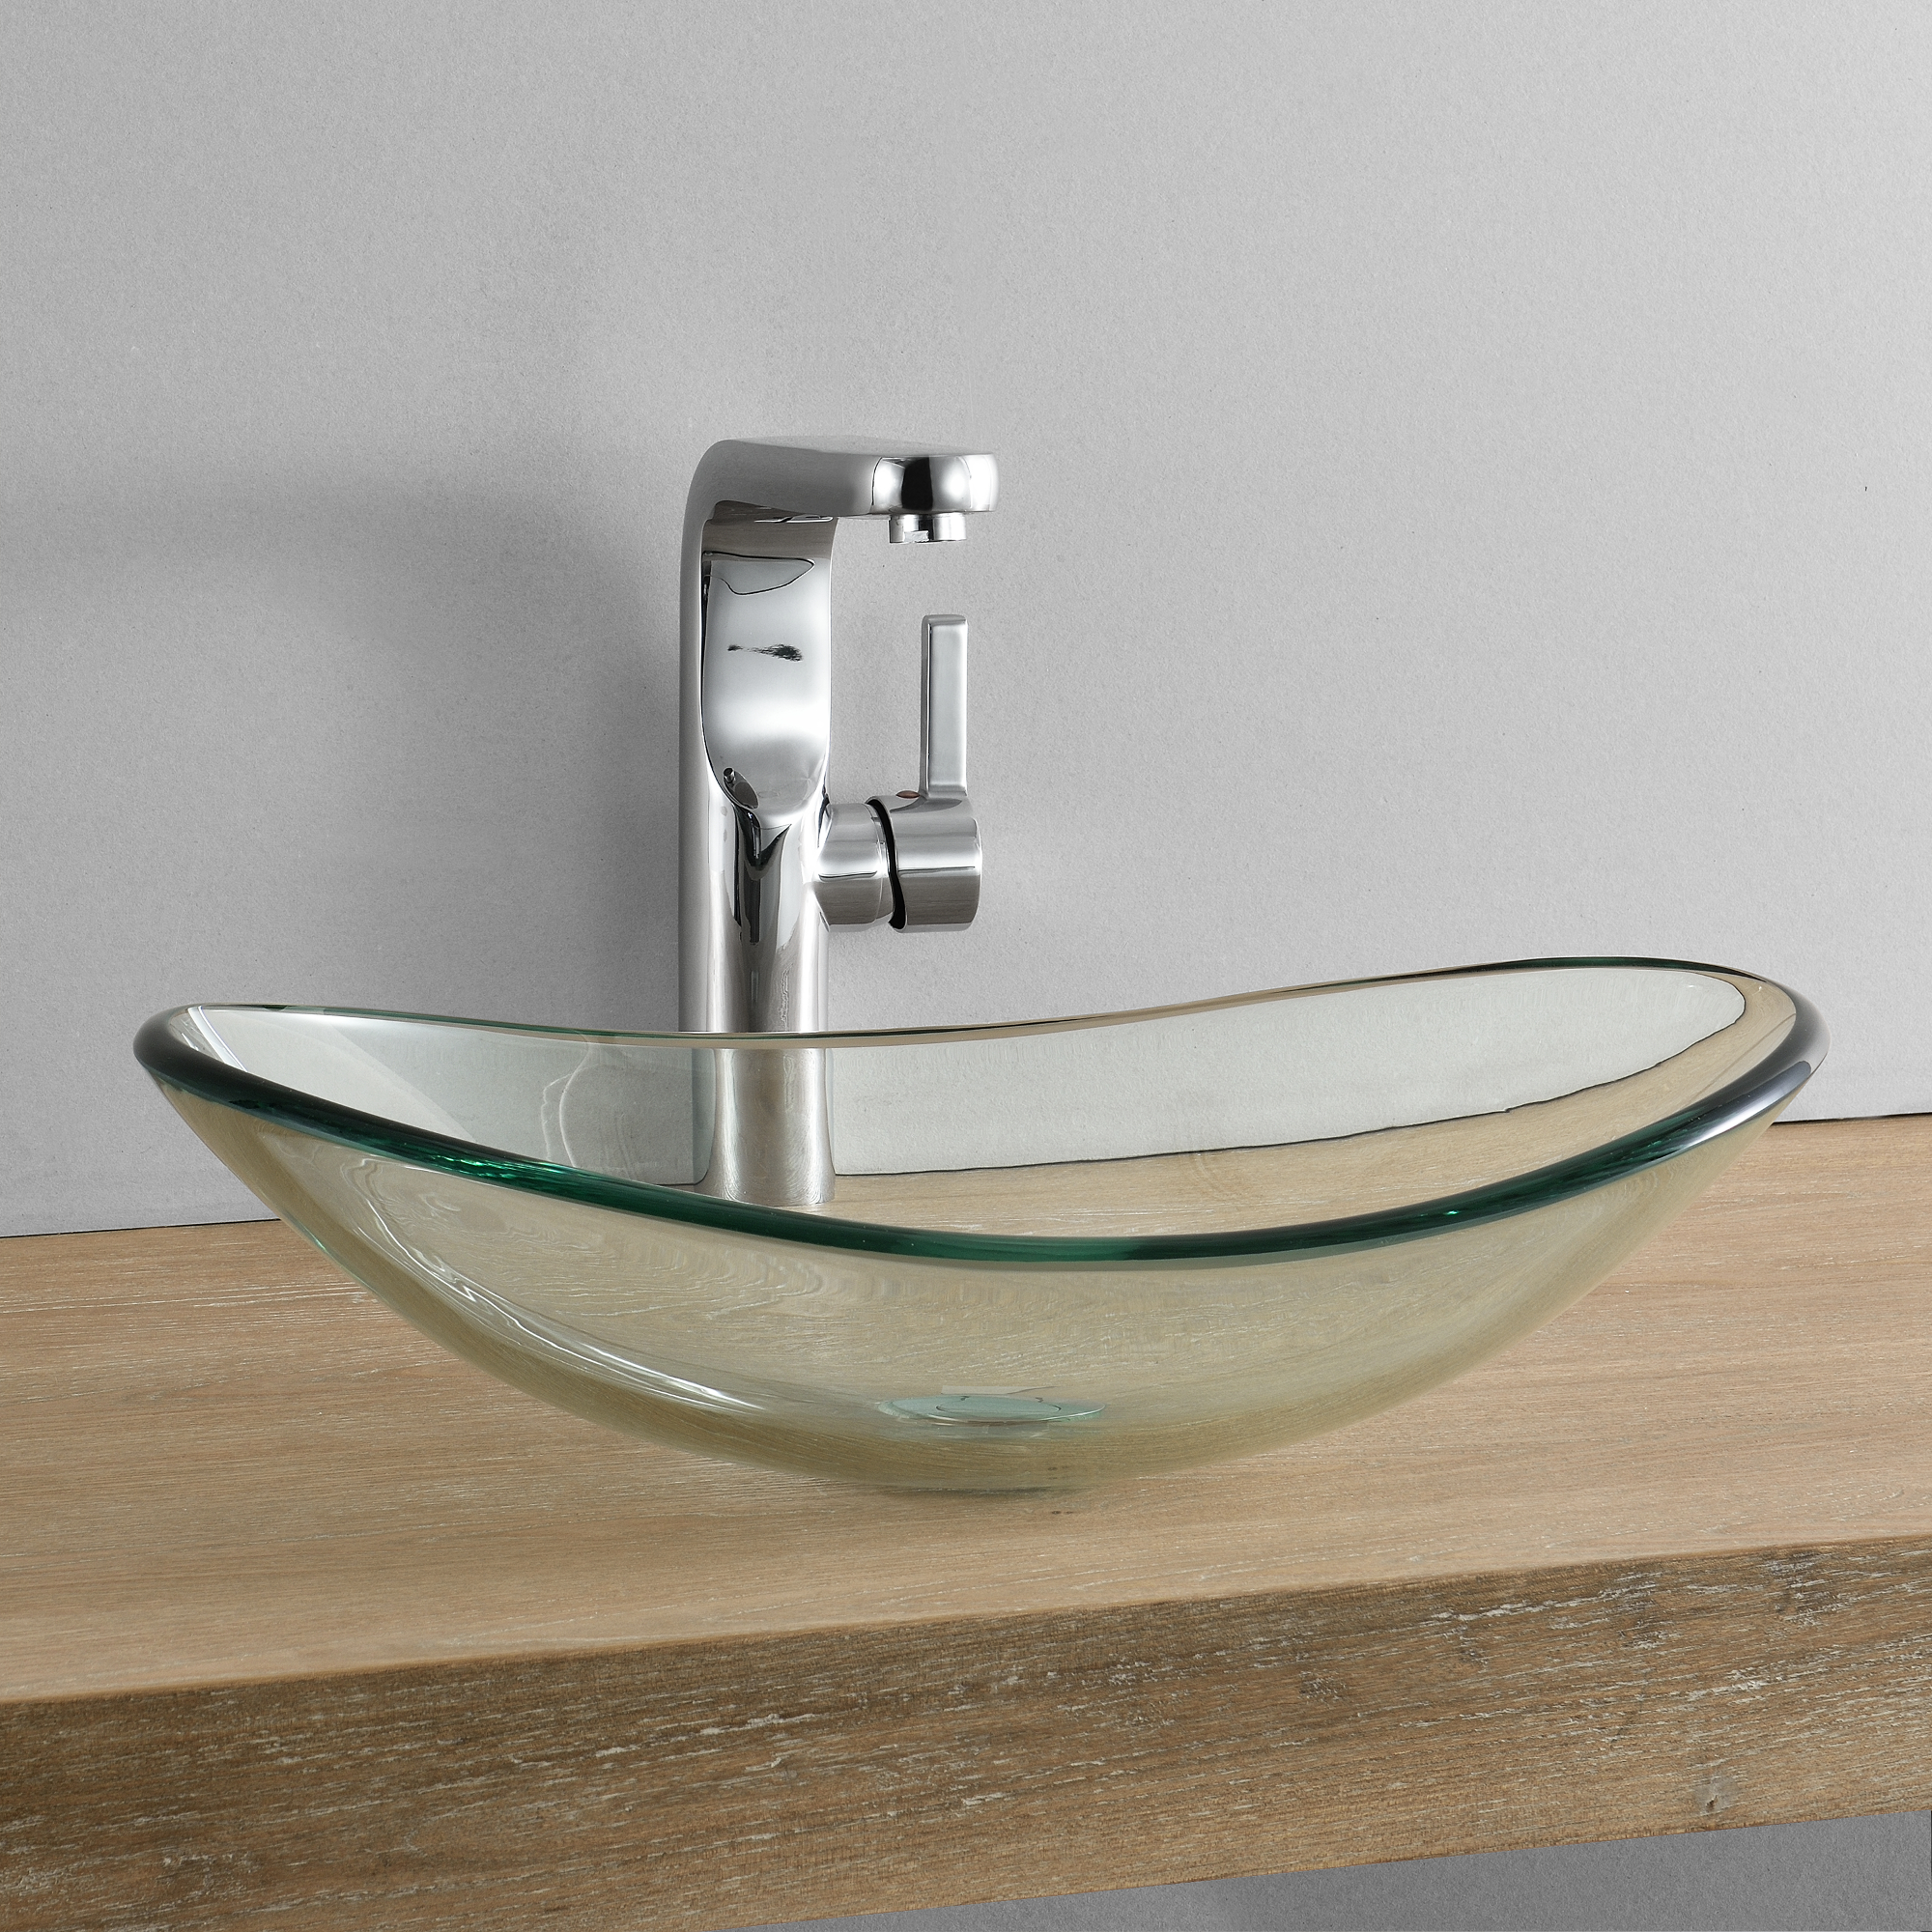 wash basin oval washbowl 47x31cm glass basin counter basin ebay. Black Bedroom Furniture Sets. Home Design Ideas